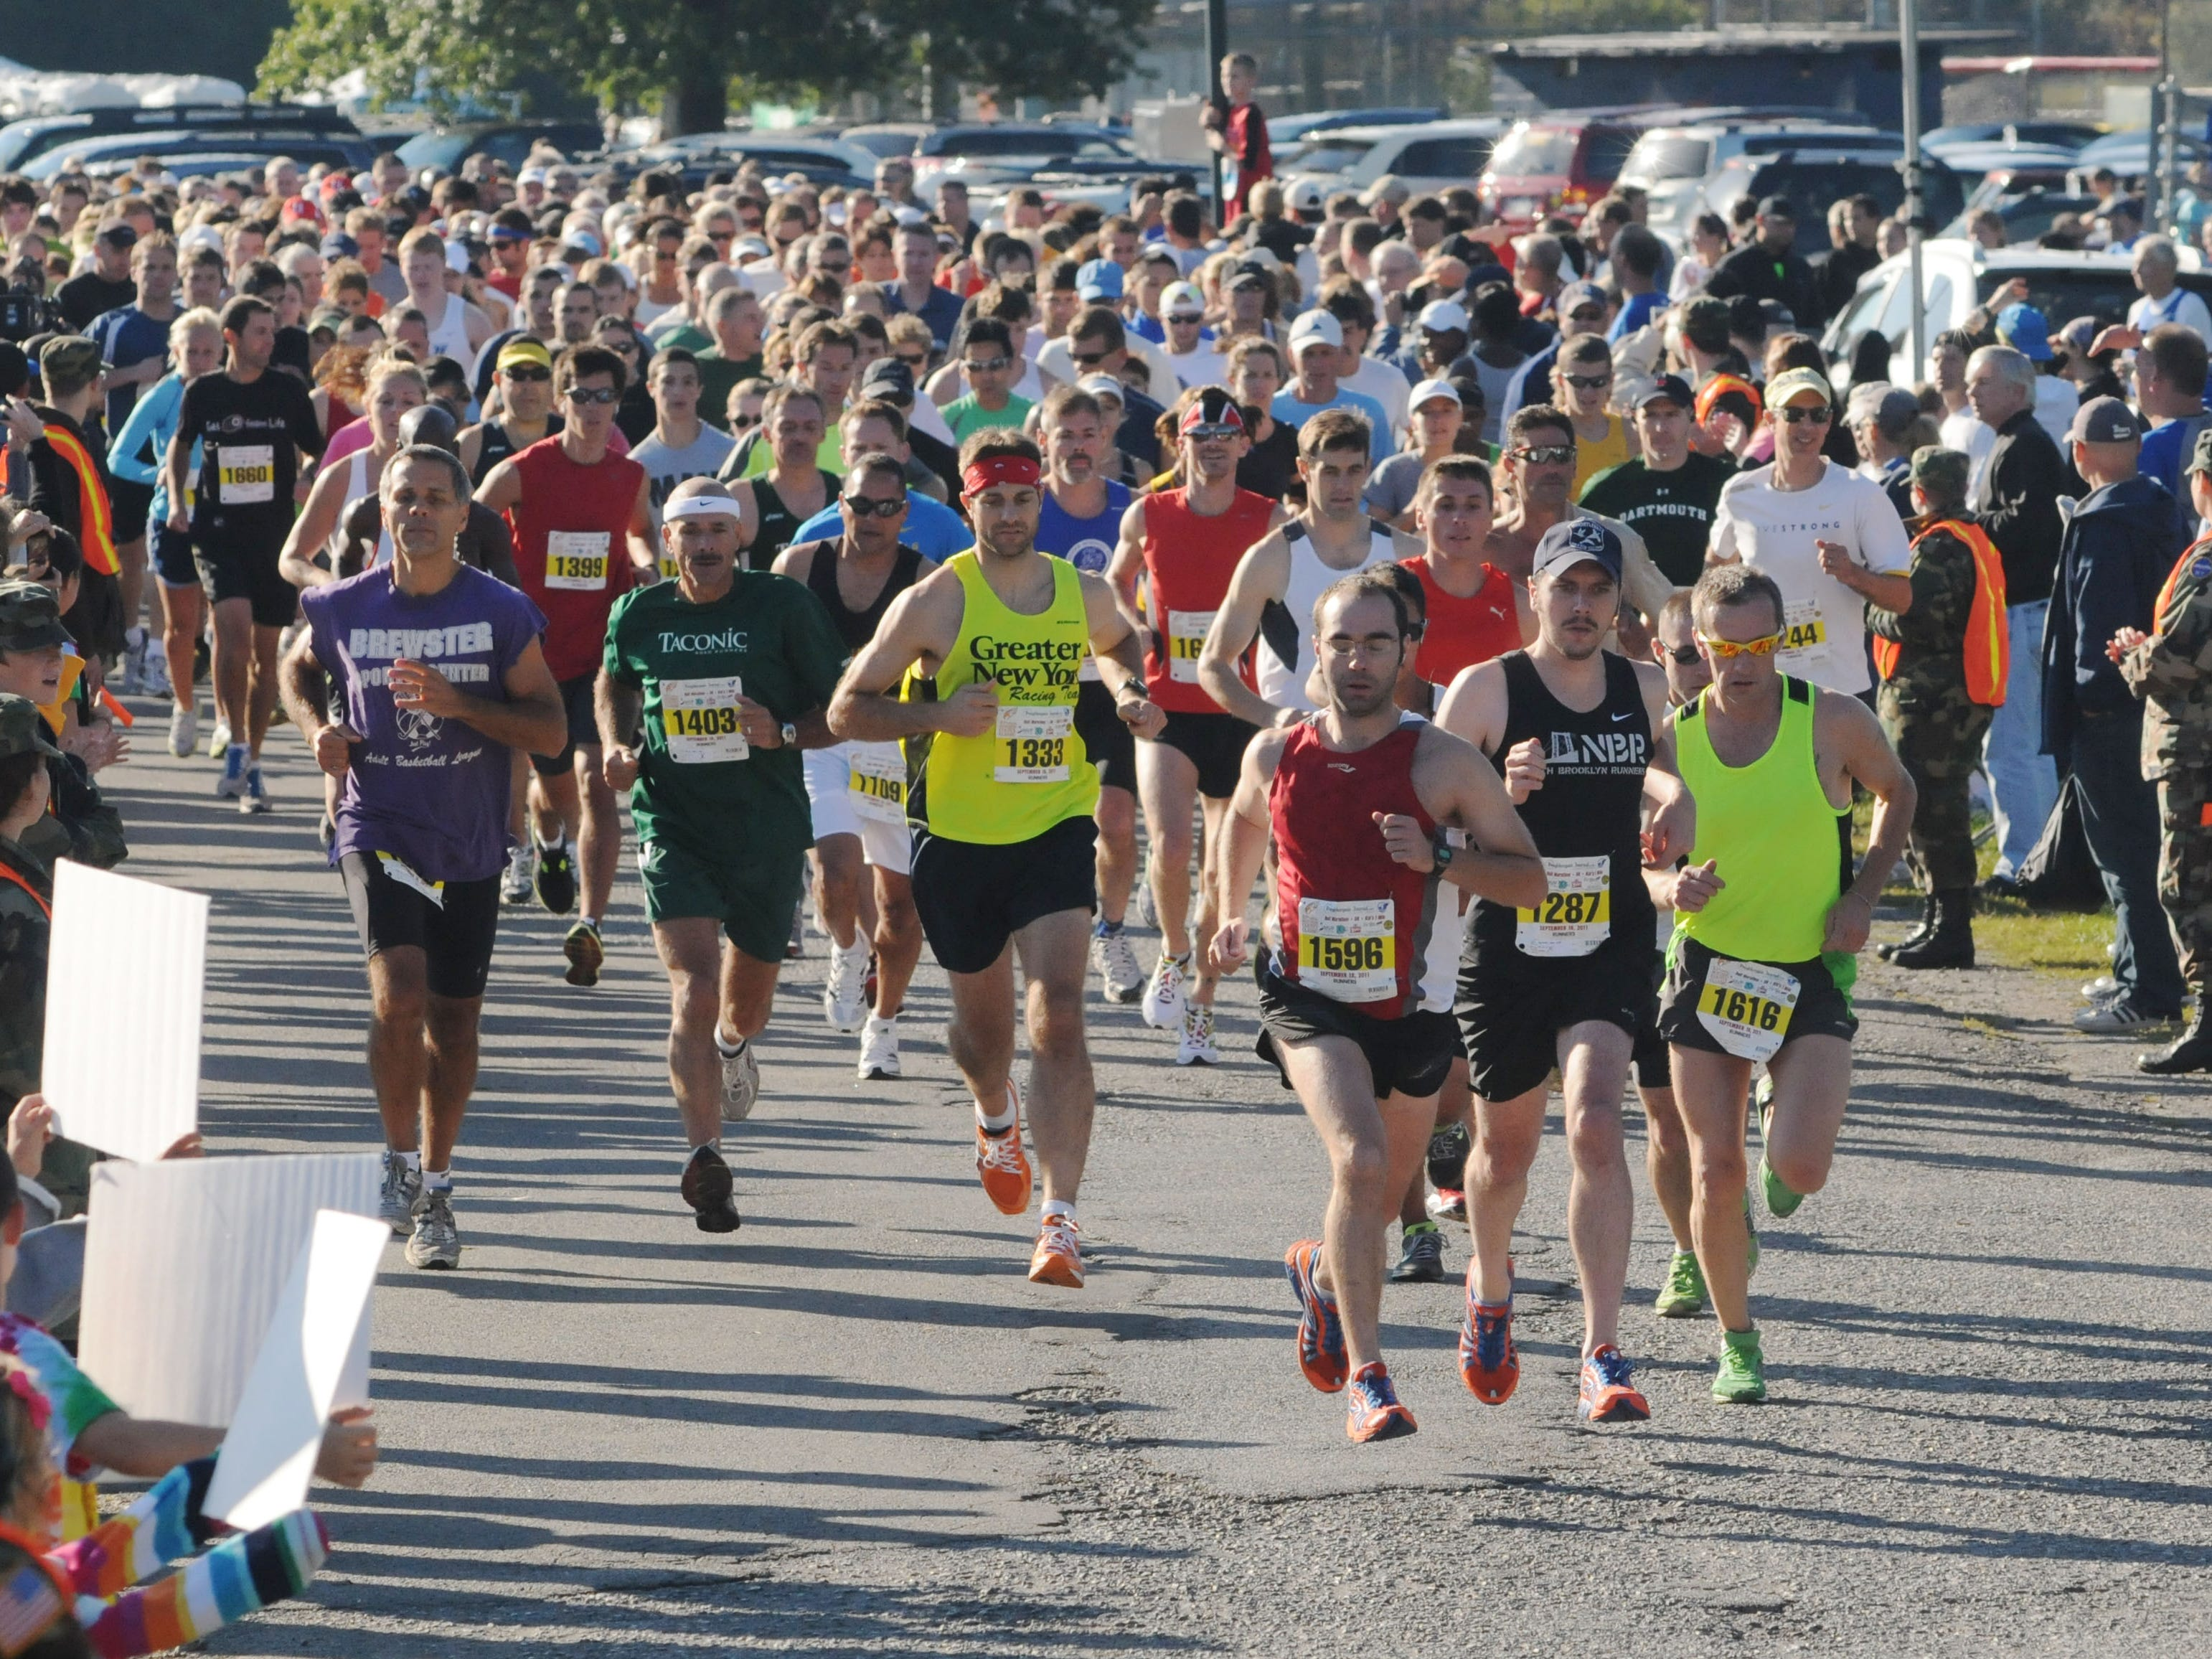 Runners participate in the 2011 Dutchess County Classic half marathon on Sept. 18 at the Town of Wappinger Recreation Complex on Robinson Lane.